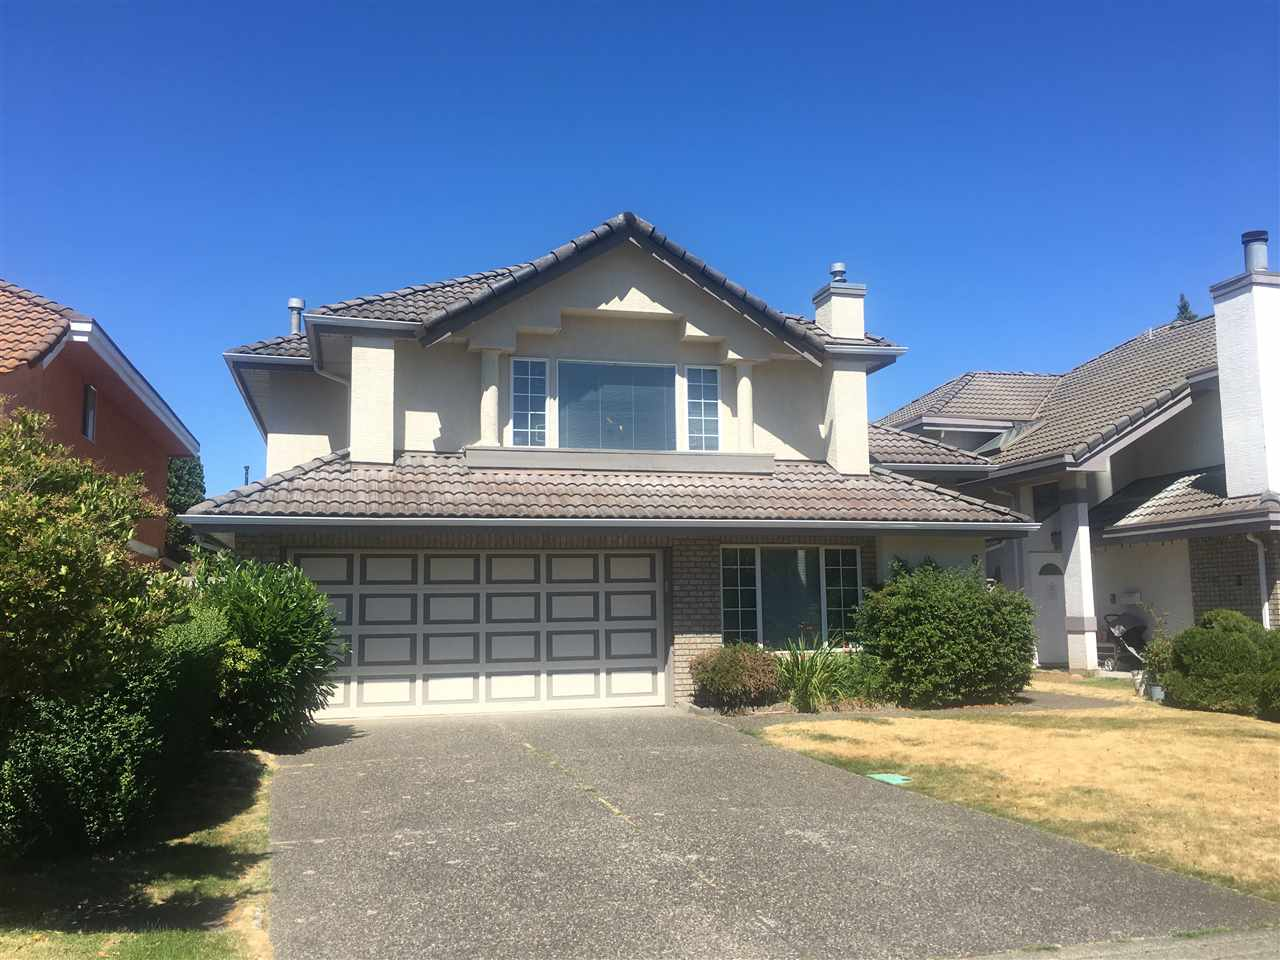 This beautifully well-kept house is located in the famous, very well sought-after Woodwards neighborhood, and is situated on a clean and quiet street, right in the heart of the Steveston-London Secondary School & Blendell Elementary catchment area.  Easy-driving to airport and Vancouver from No.2 Road, and only minutes away from shopping at the Blundell Center. Wonderful neighborhood.